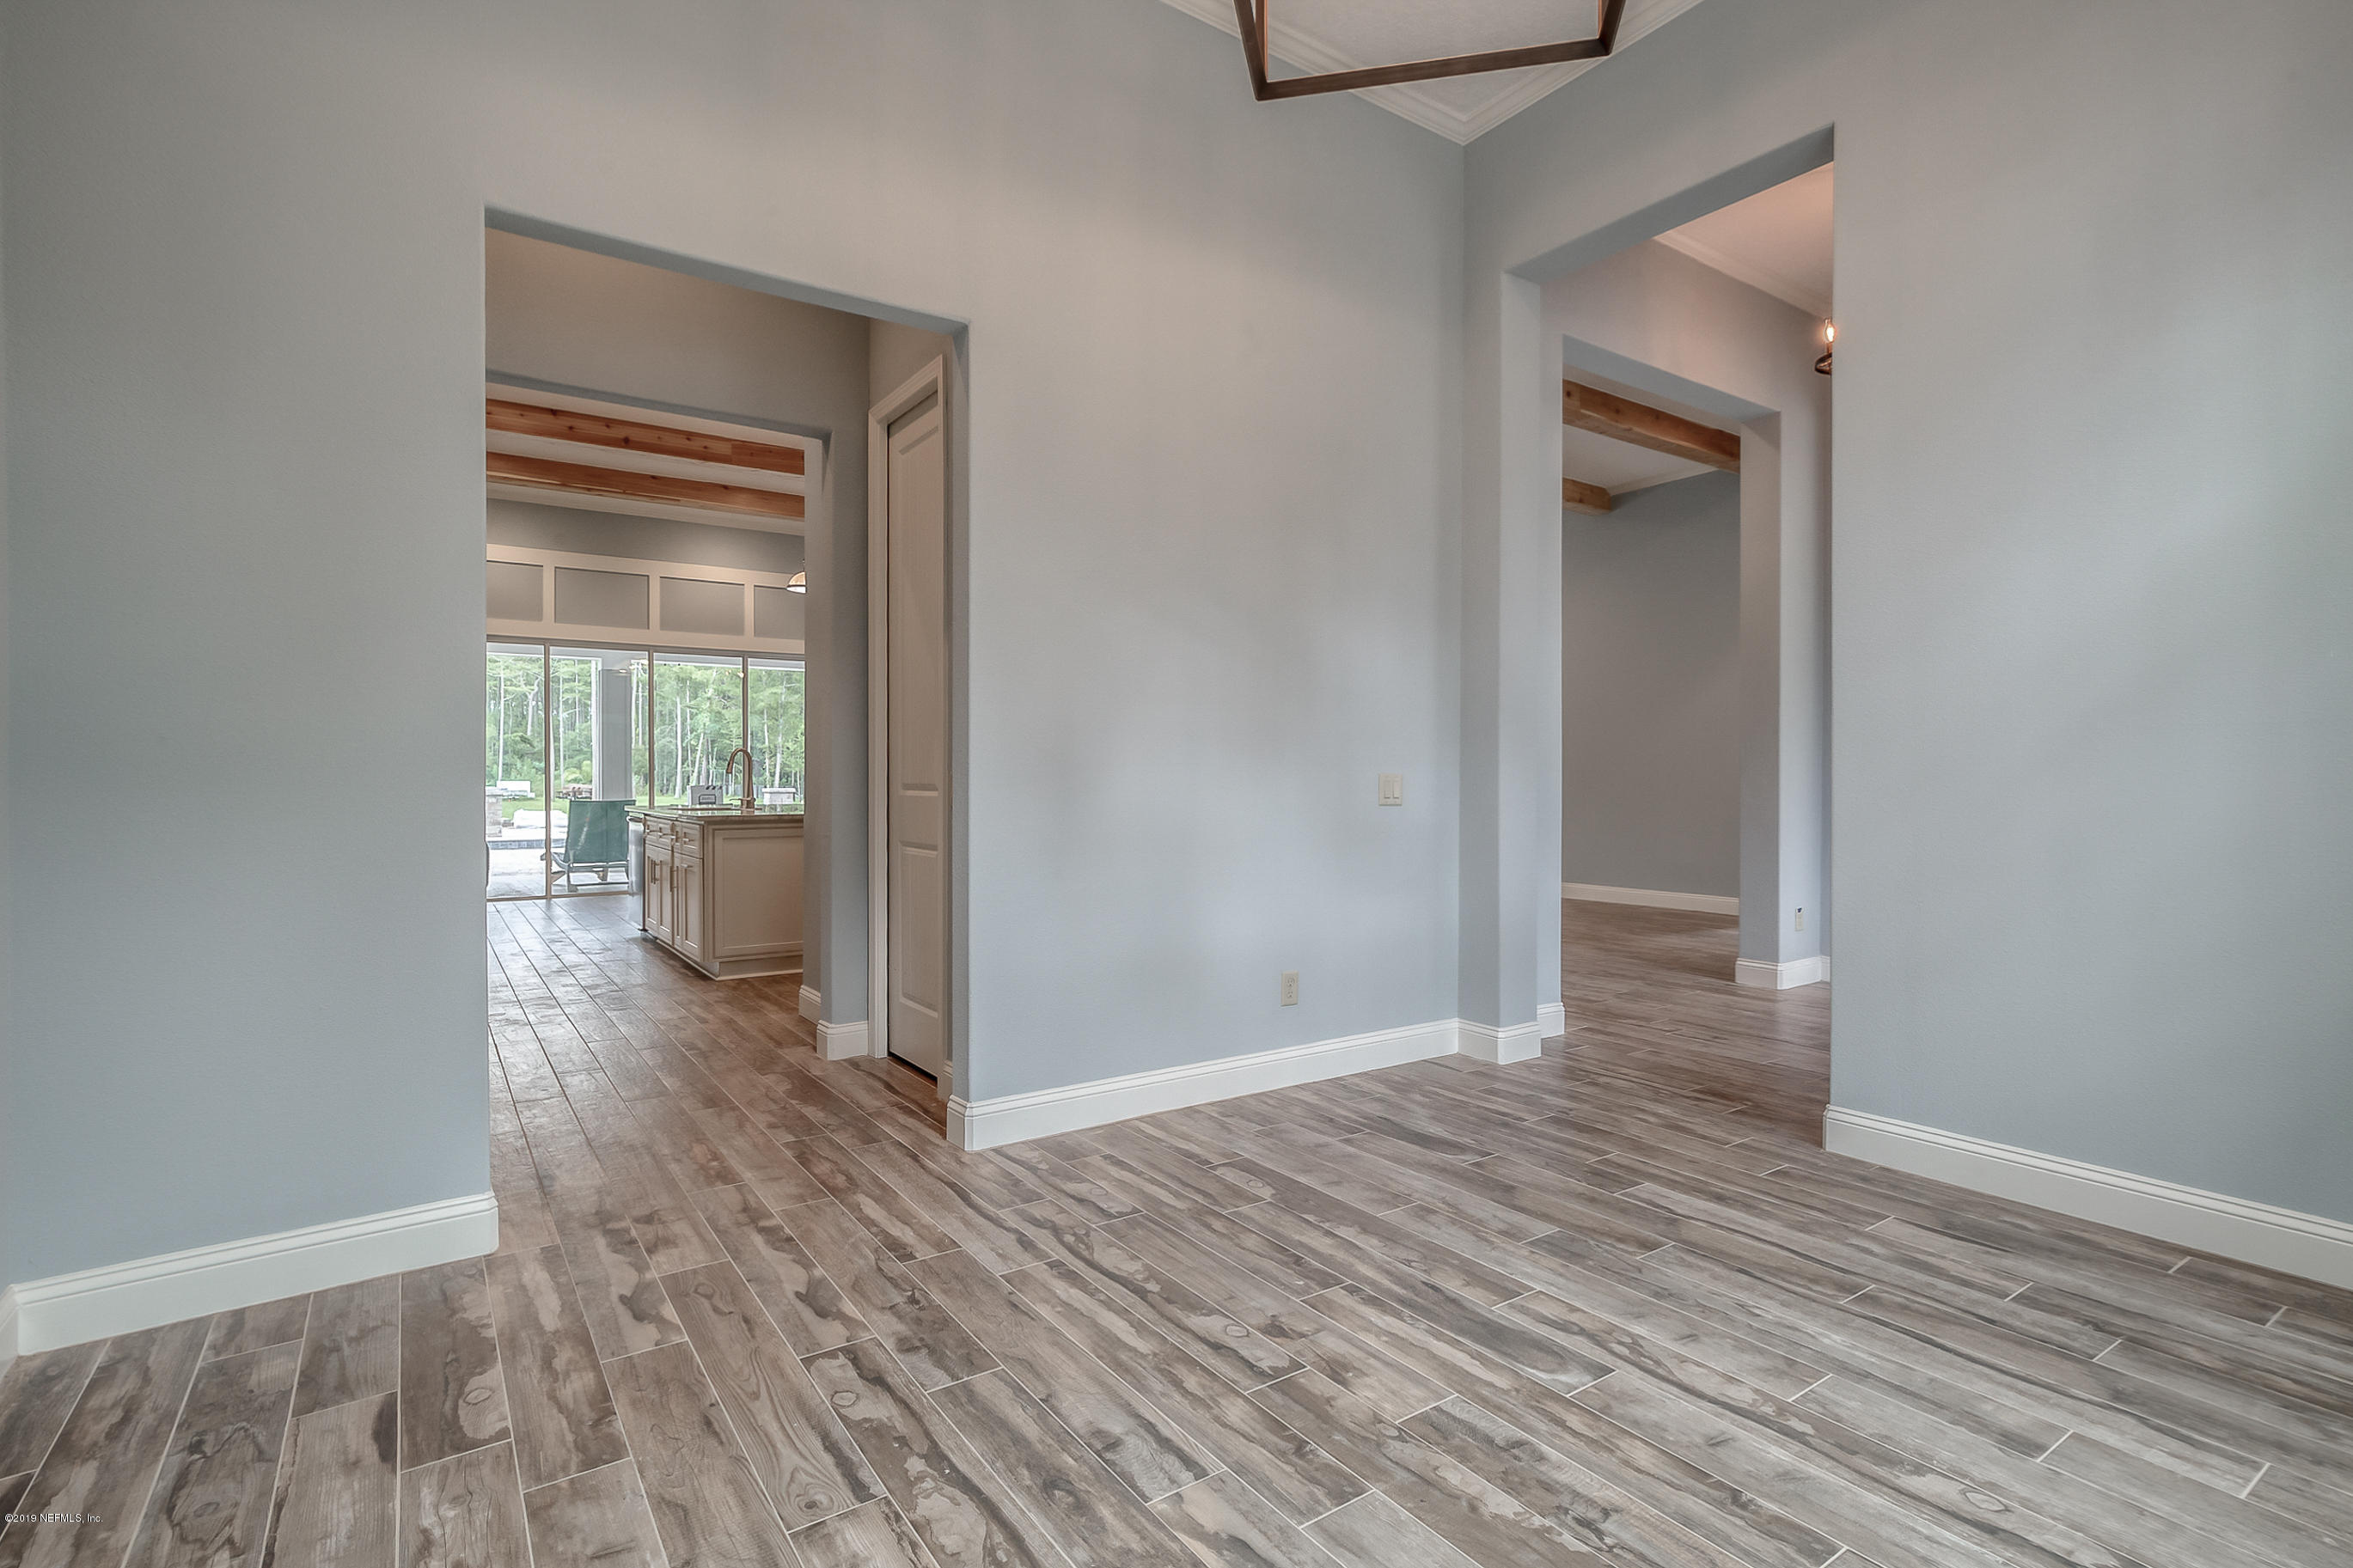 4120-1 RIVERVIEW, GREEN COVE SPRINGS, FLORIDA 32043, 4 Bedrooms Bedrooms, ,3 BathroomsBathrooms,Residential - single family,For sale,RIVERVIEW,1016414